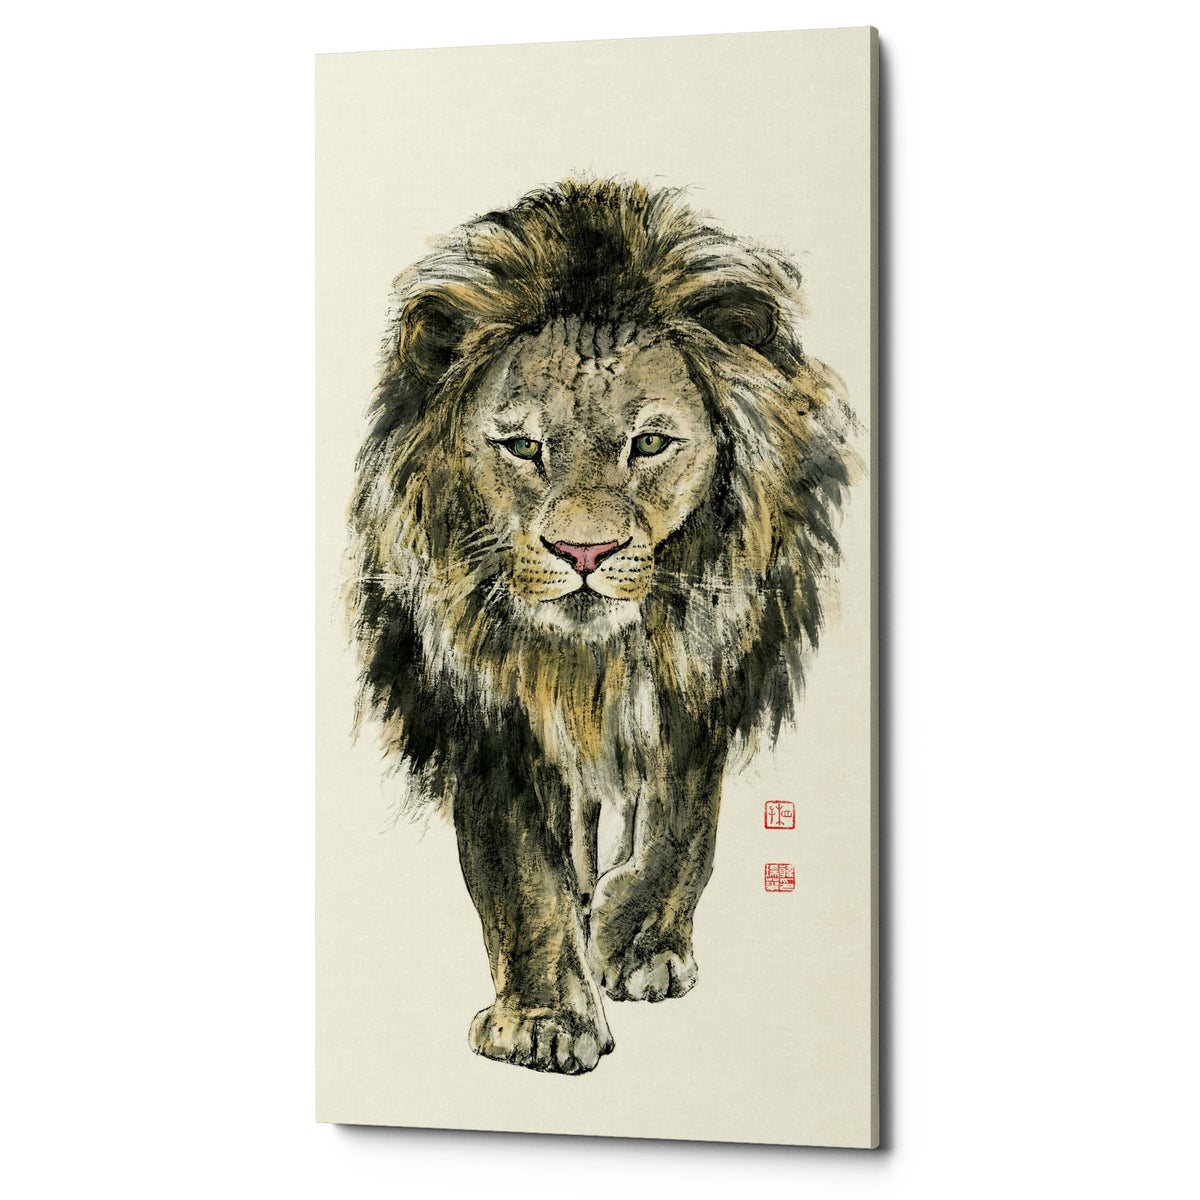 "Epic Graffiti ""Majestic King of the Jungle"" by River Han, Giclee Canvas Wall Art"